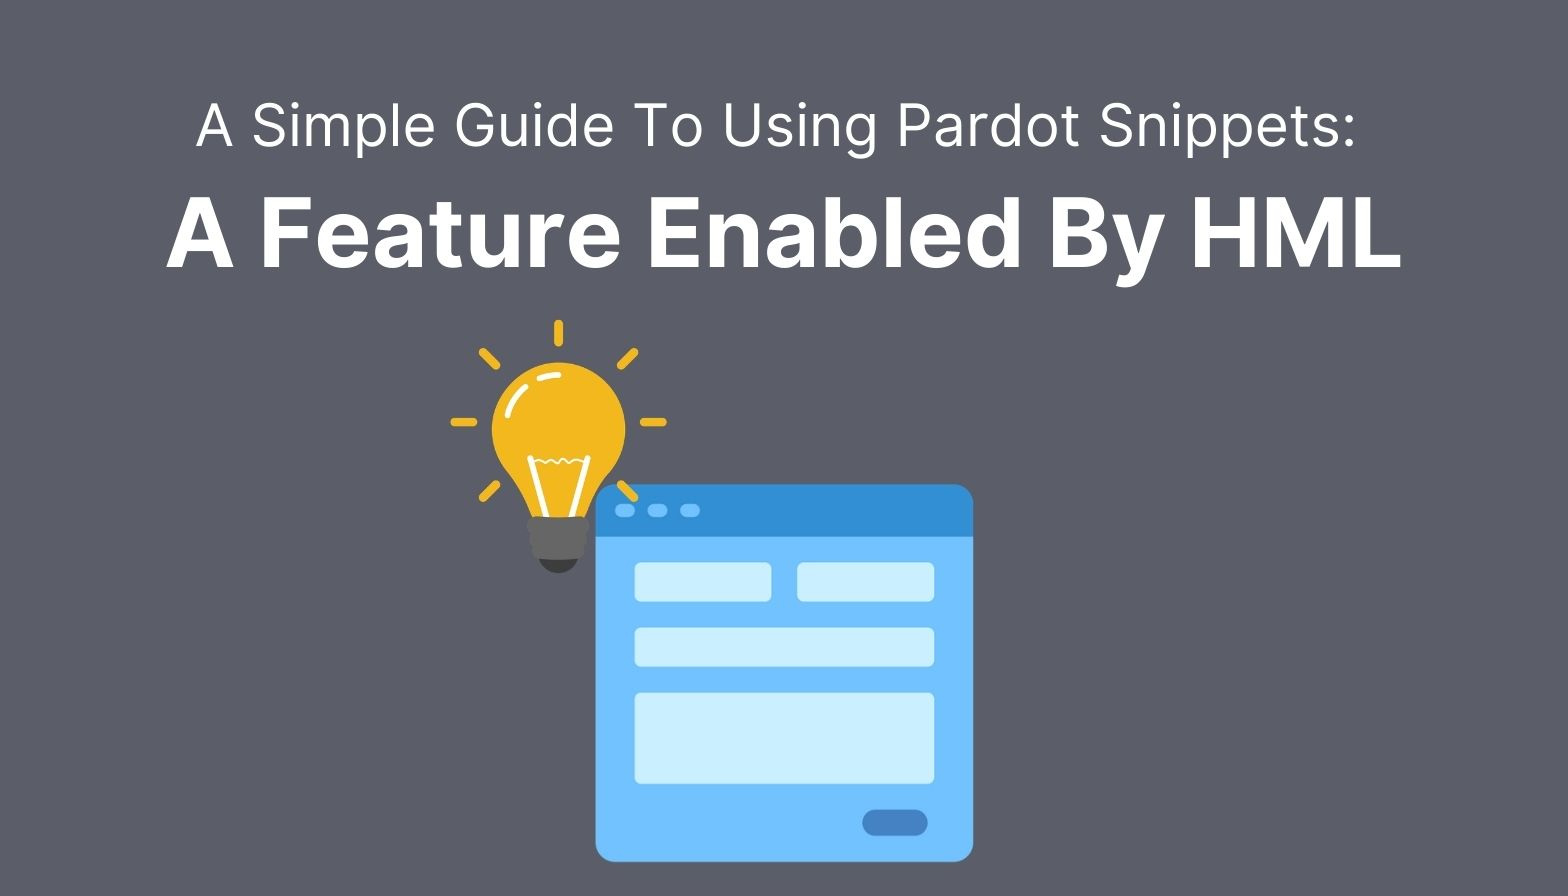 A Simple Guide to Pardot Snippets